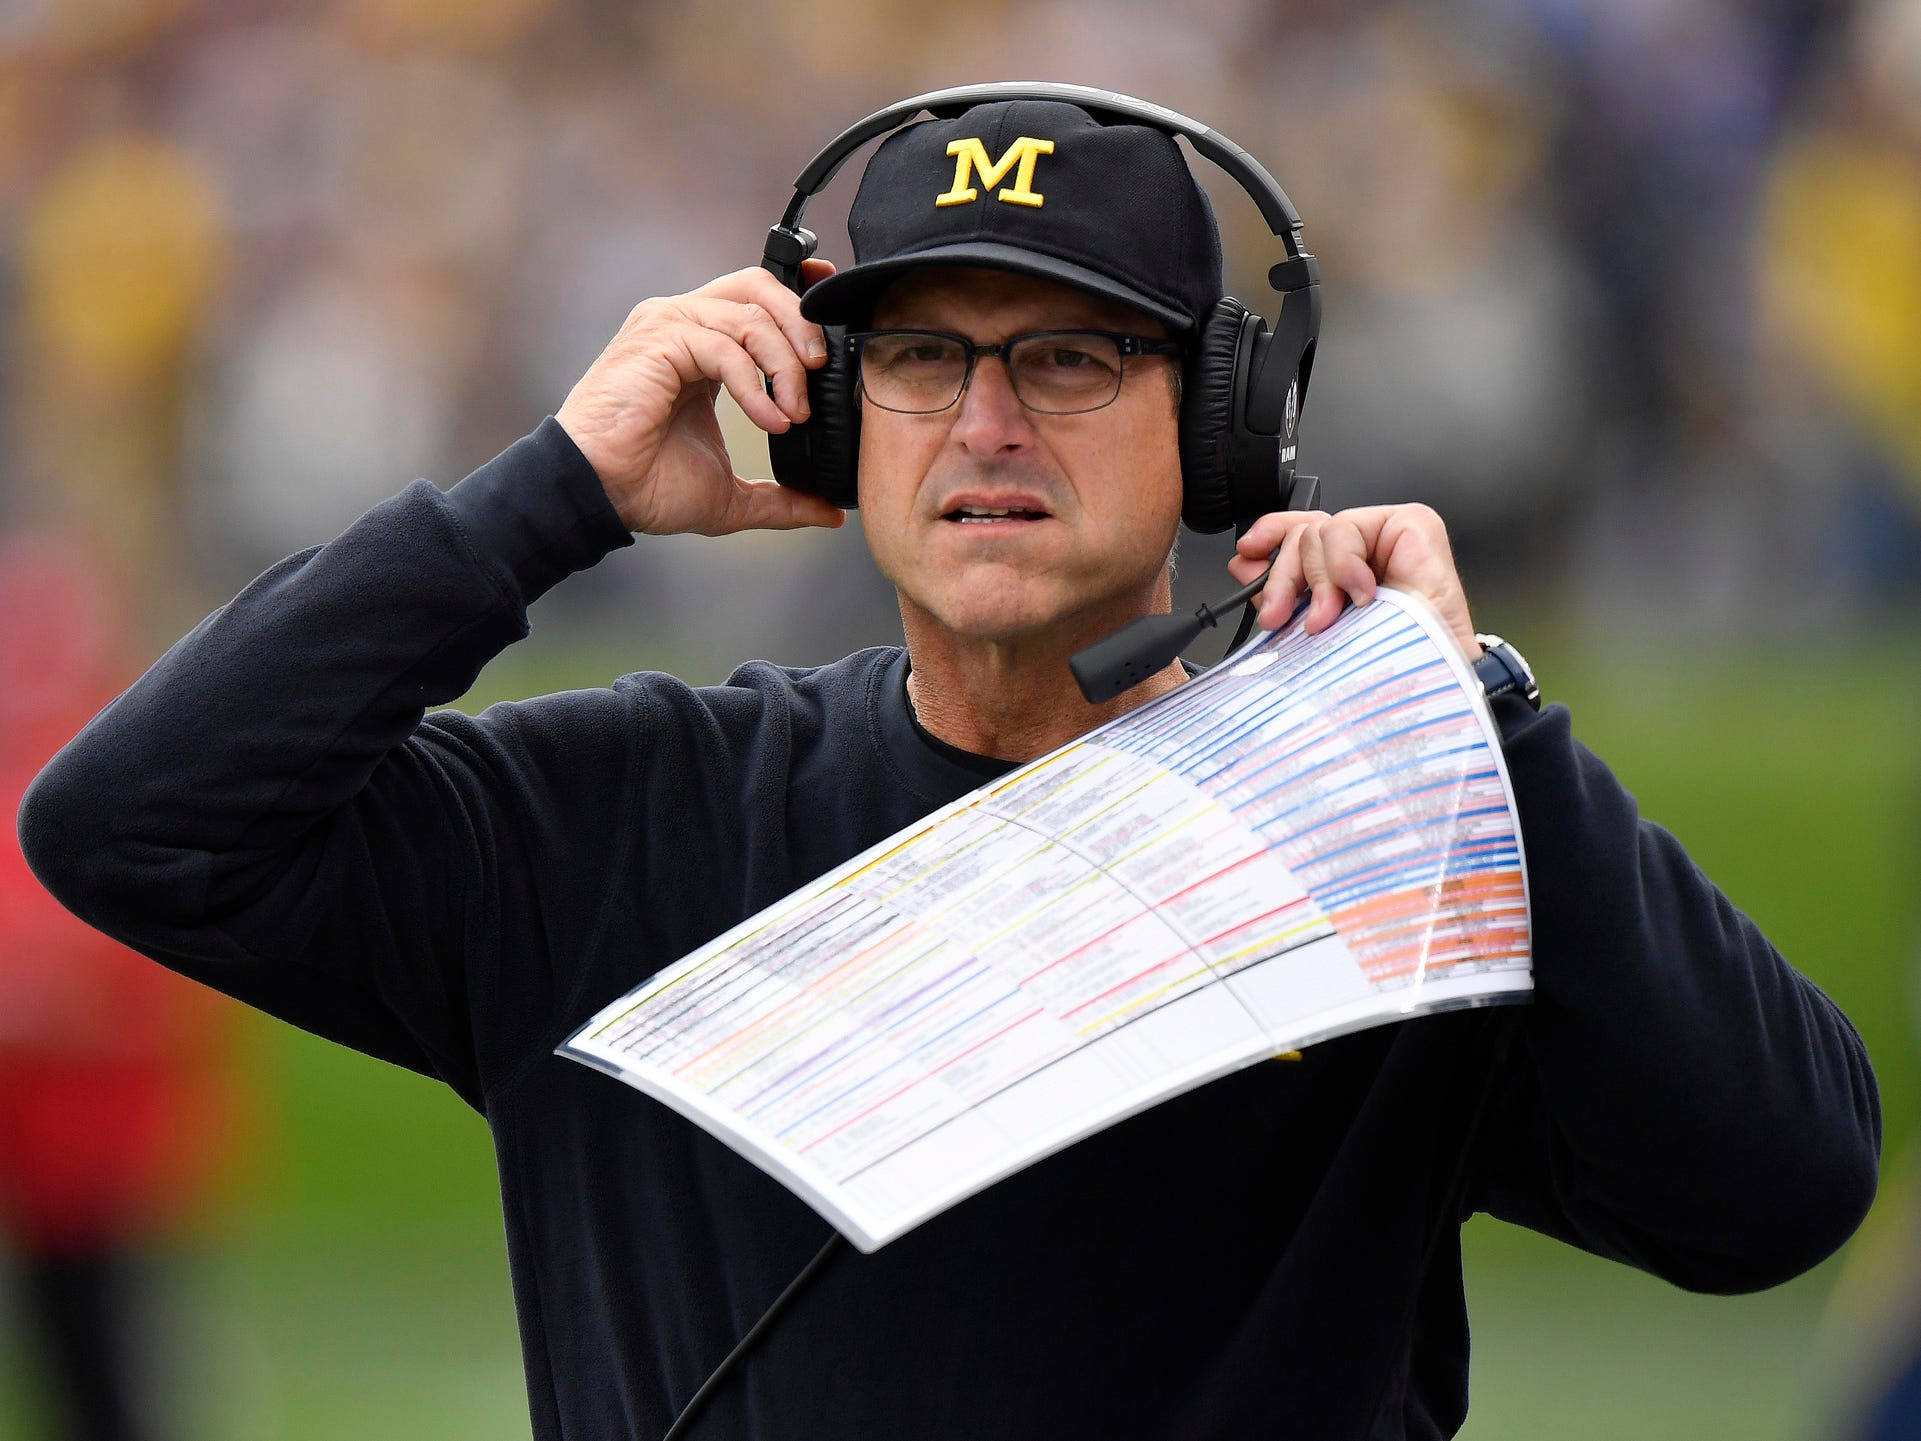 Michigan coach Jim Harbaugh during the game against Northwestern at Ryan Field on Sept. 29, 2018 in Evanston, Ill.